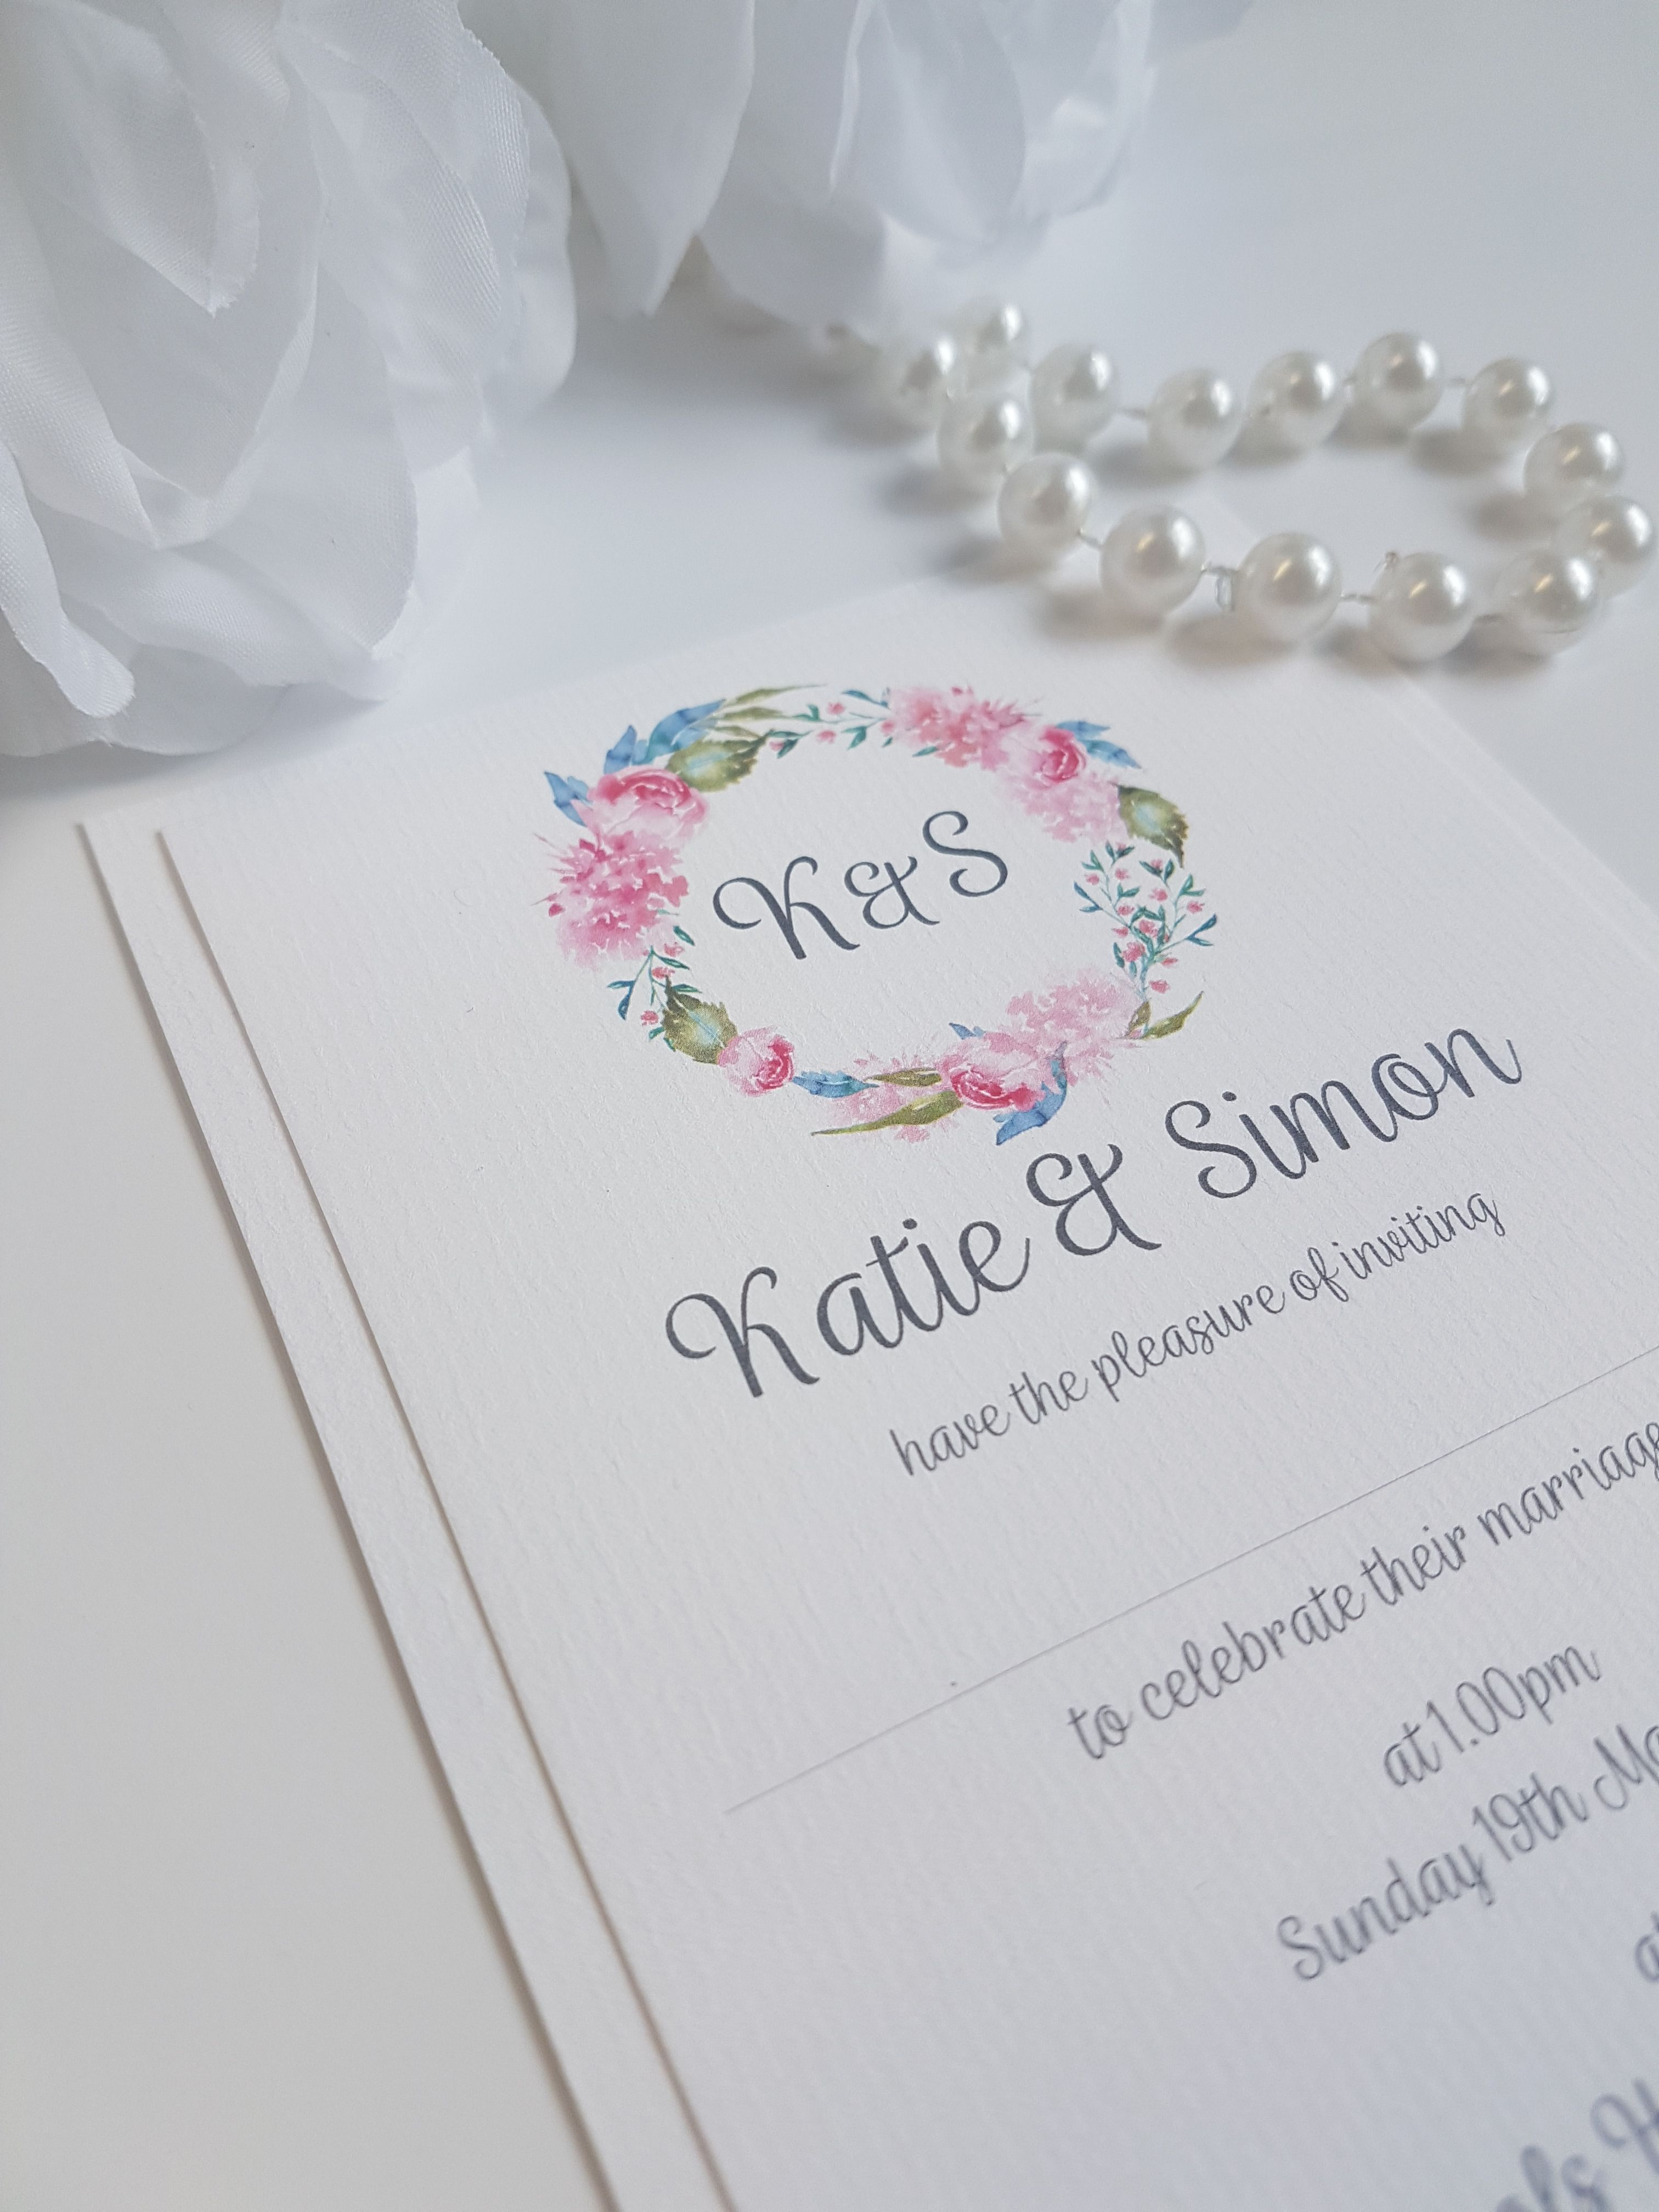 Really pretty pink peonies floral wreath themed wedding invitations ...